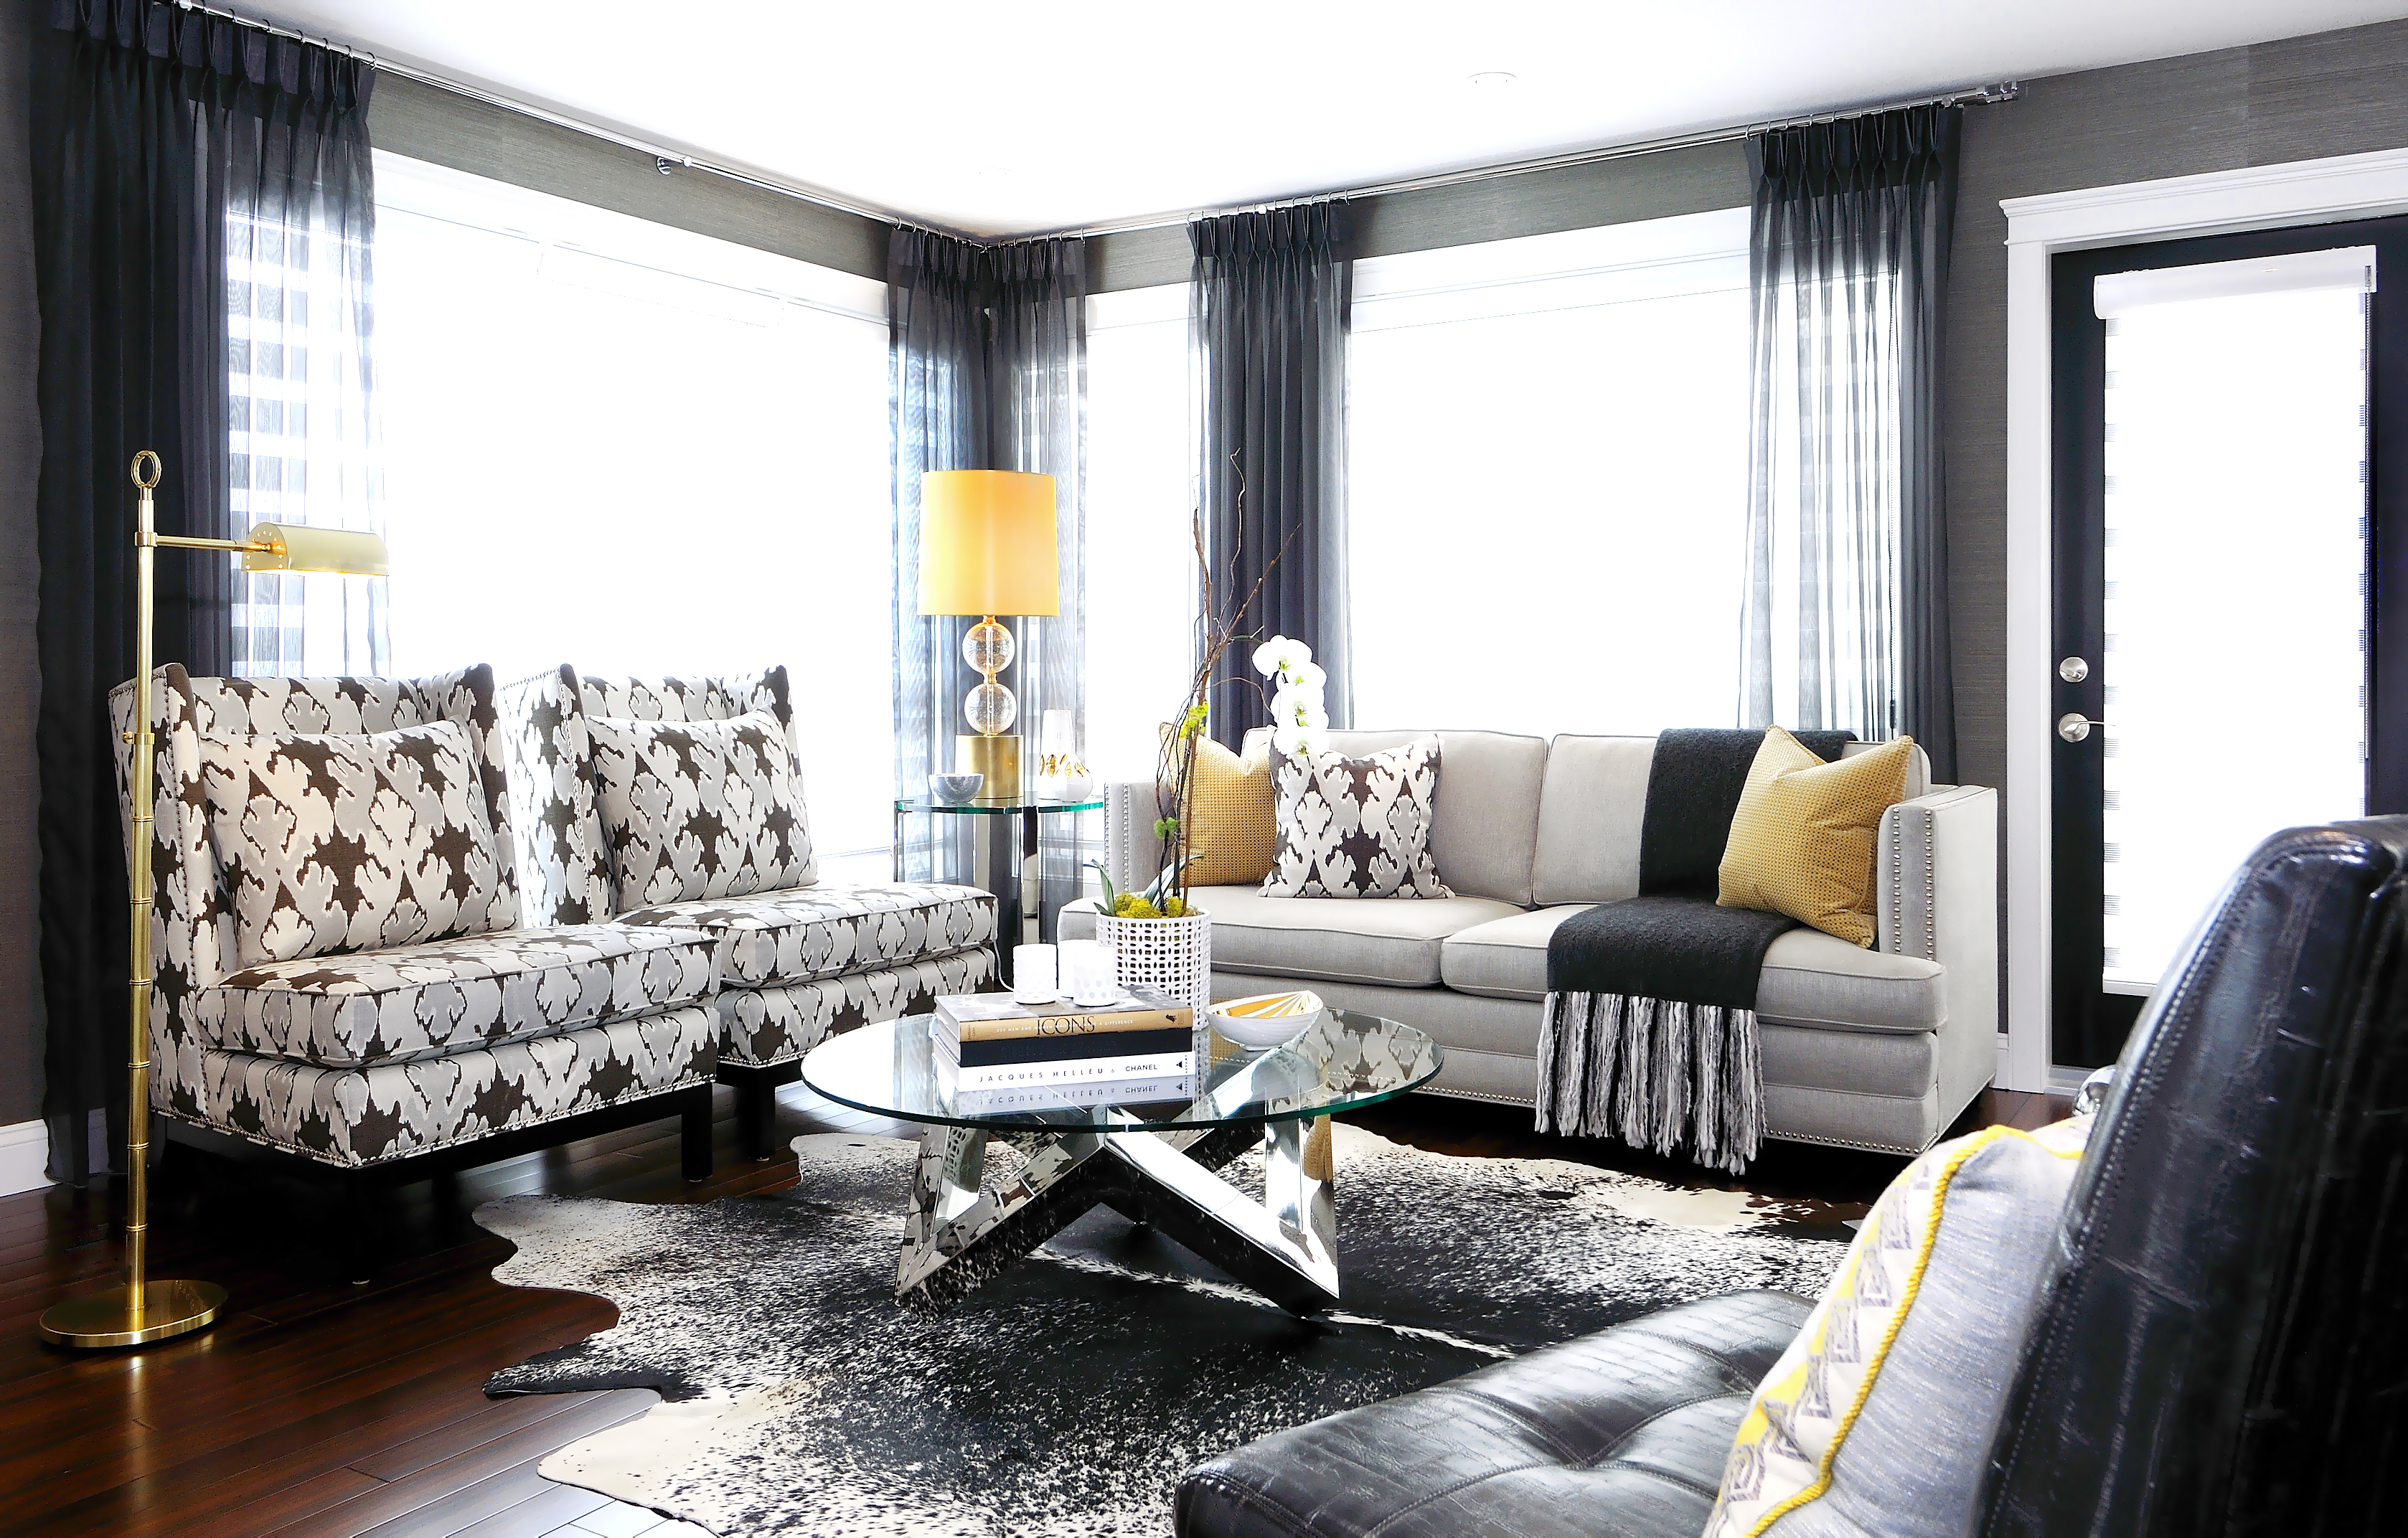 The atmosphere how to finish off a room atmosphere for Black grey interior design